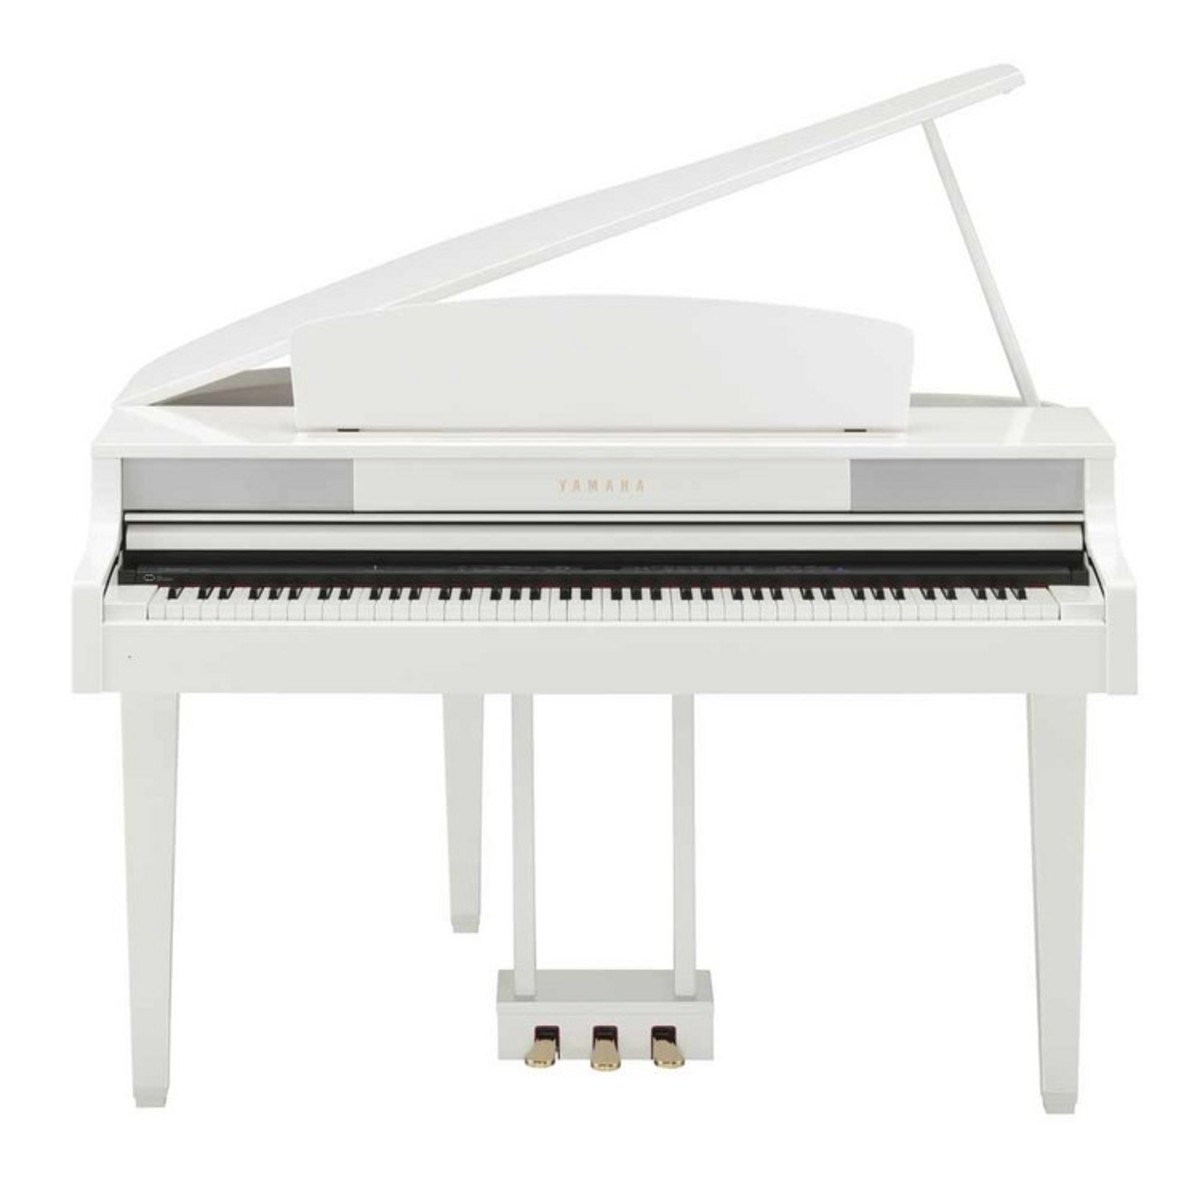 yamaha clp465 piano queue blanc brillant avec banc assorti. Black Bedroom Furniture Sets. Home Design Ideas